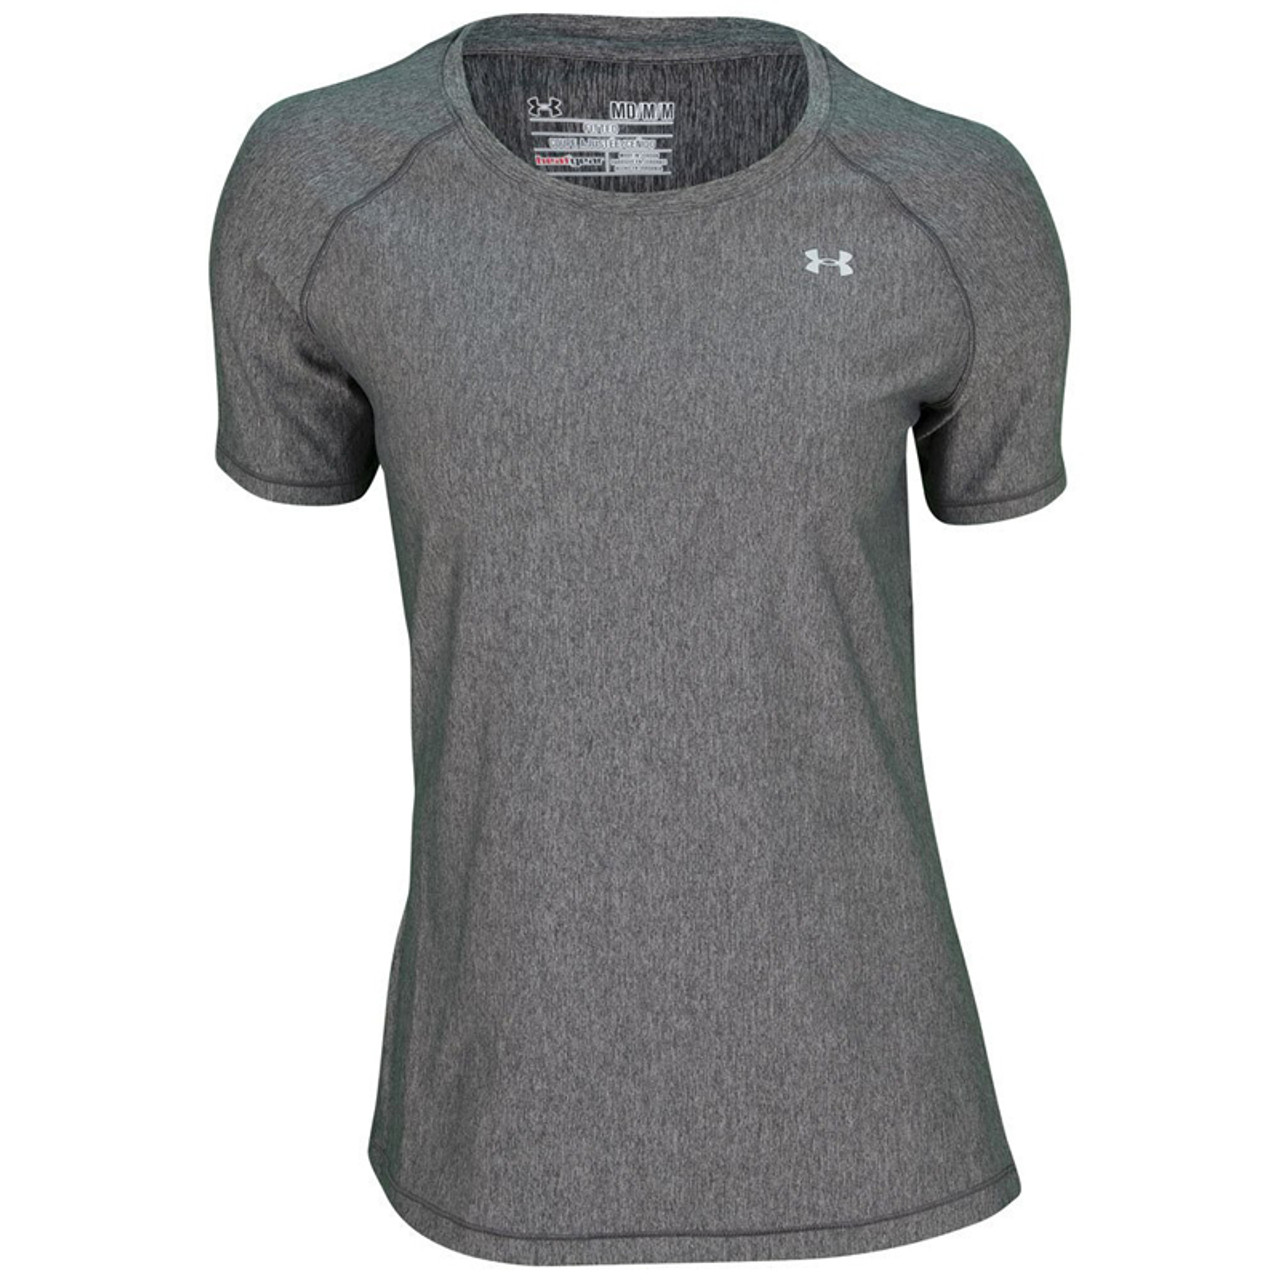 New Womans Under Armour Heat Gear T Shirt